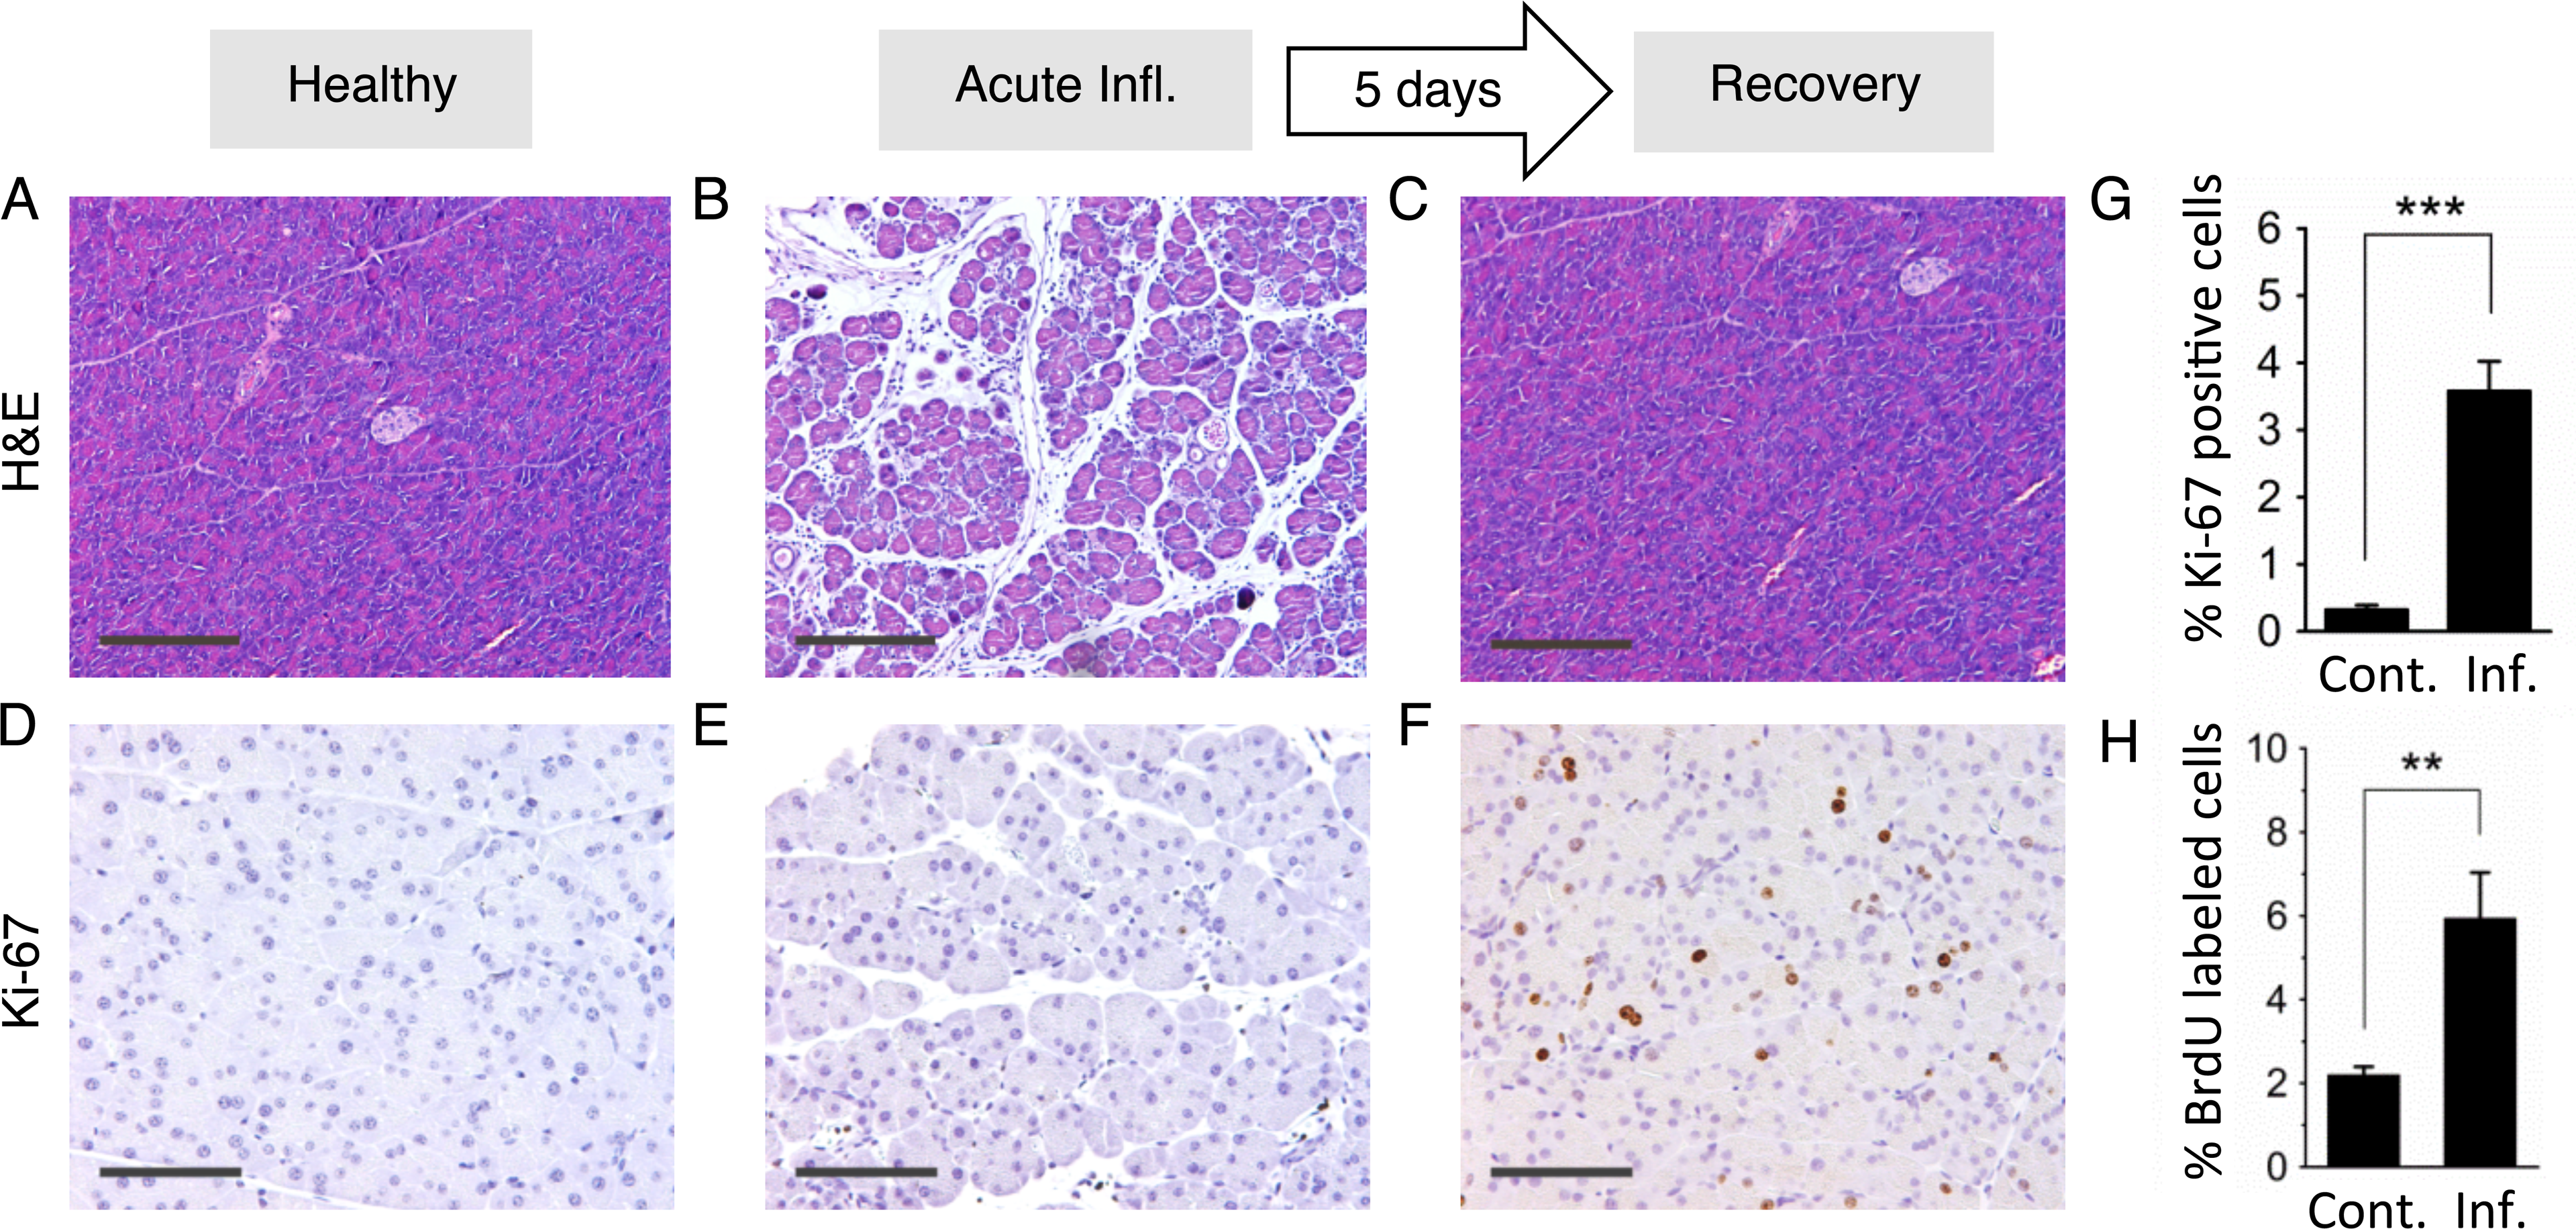 Inflammation and regenerative cell proliferation are separated in acute cerulein pancreatitis.